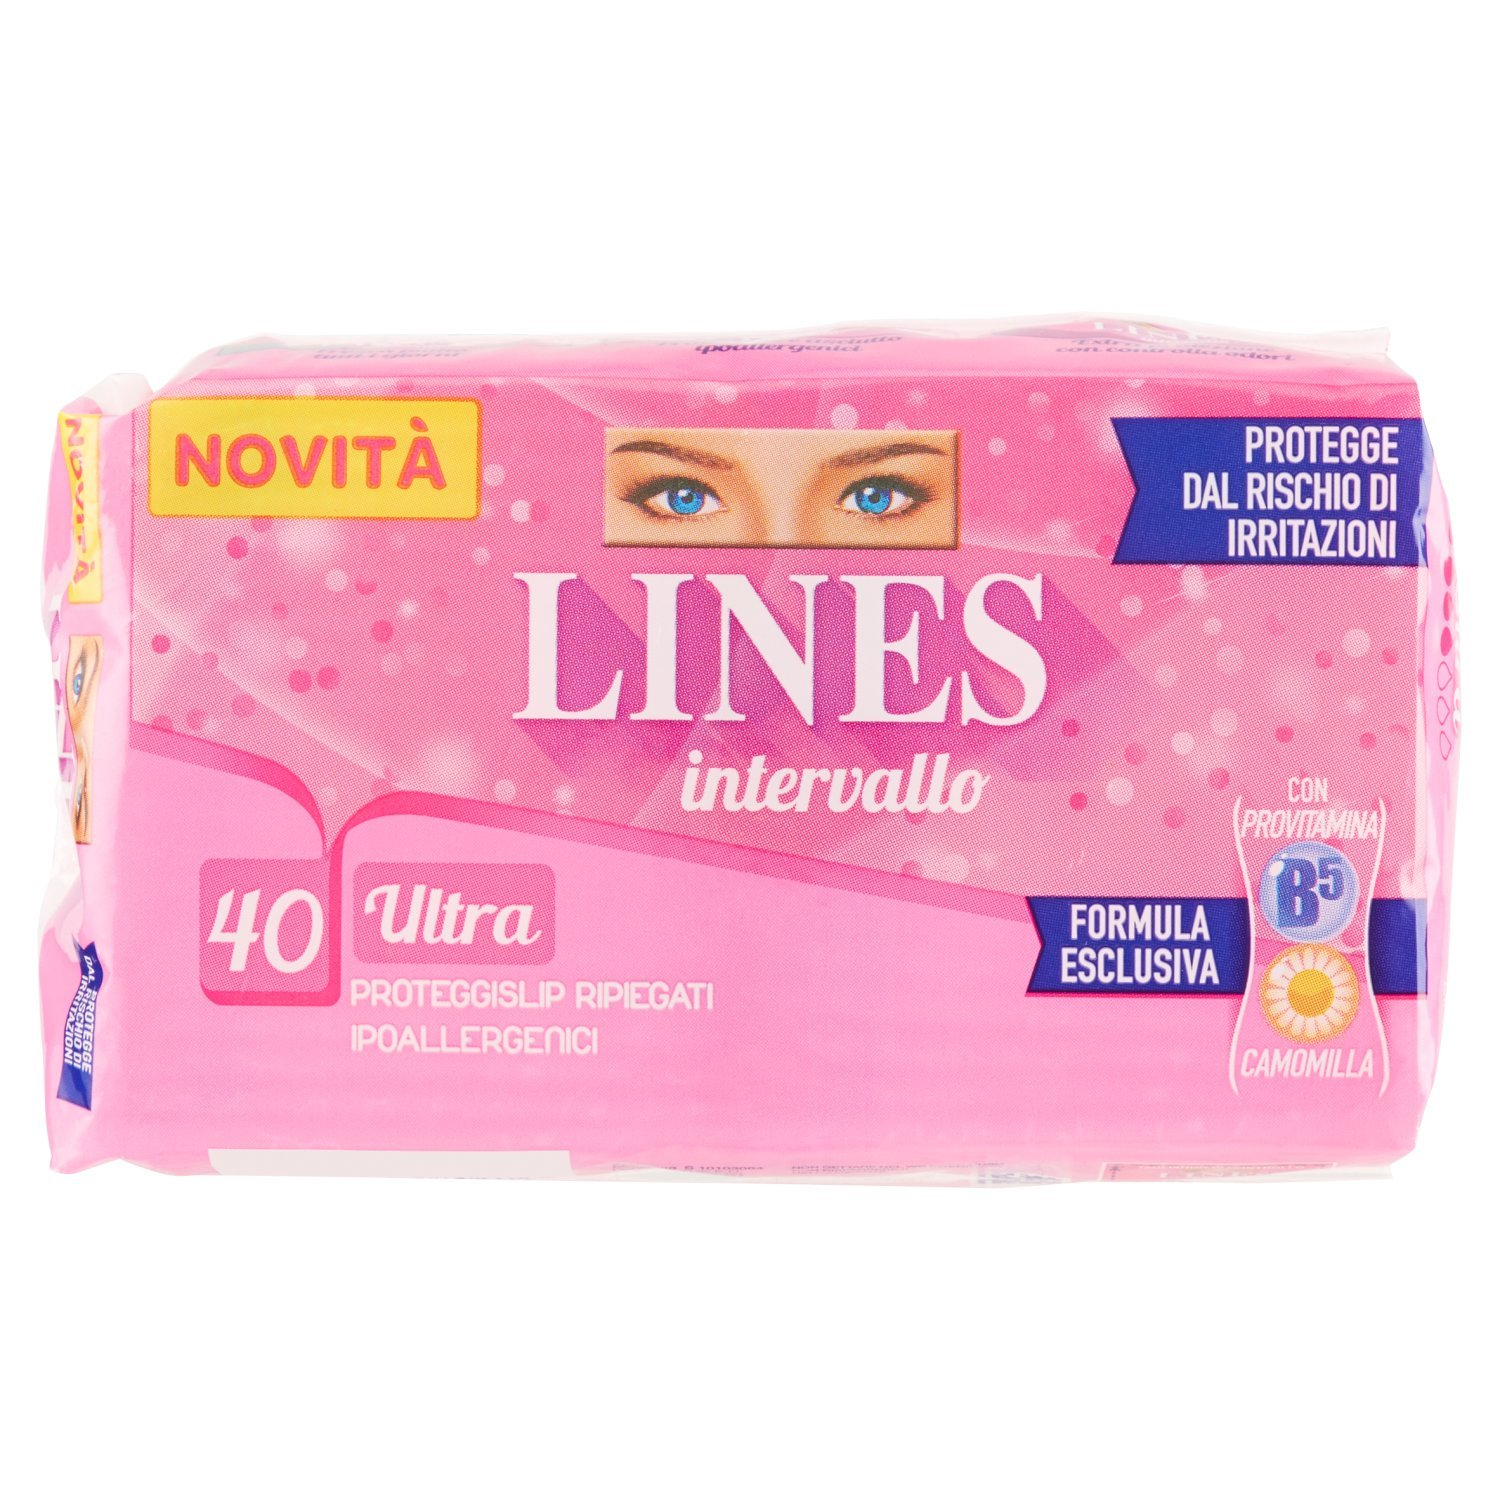 Lines intervallo fresh ultra 40pz